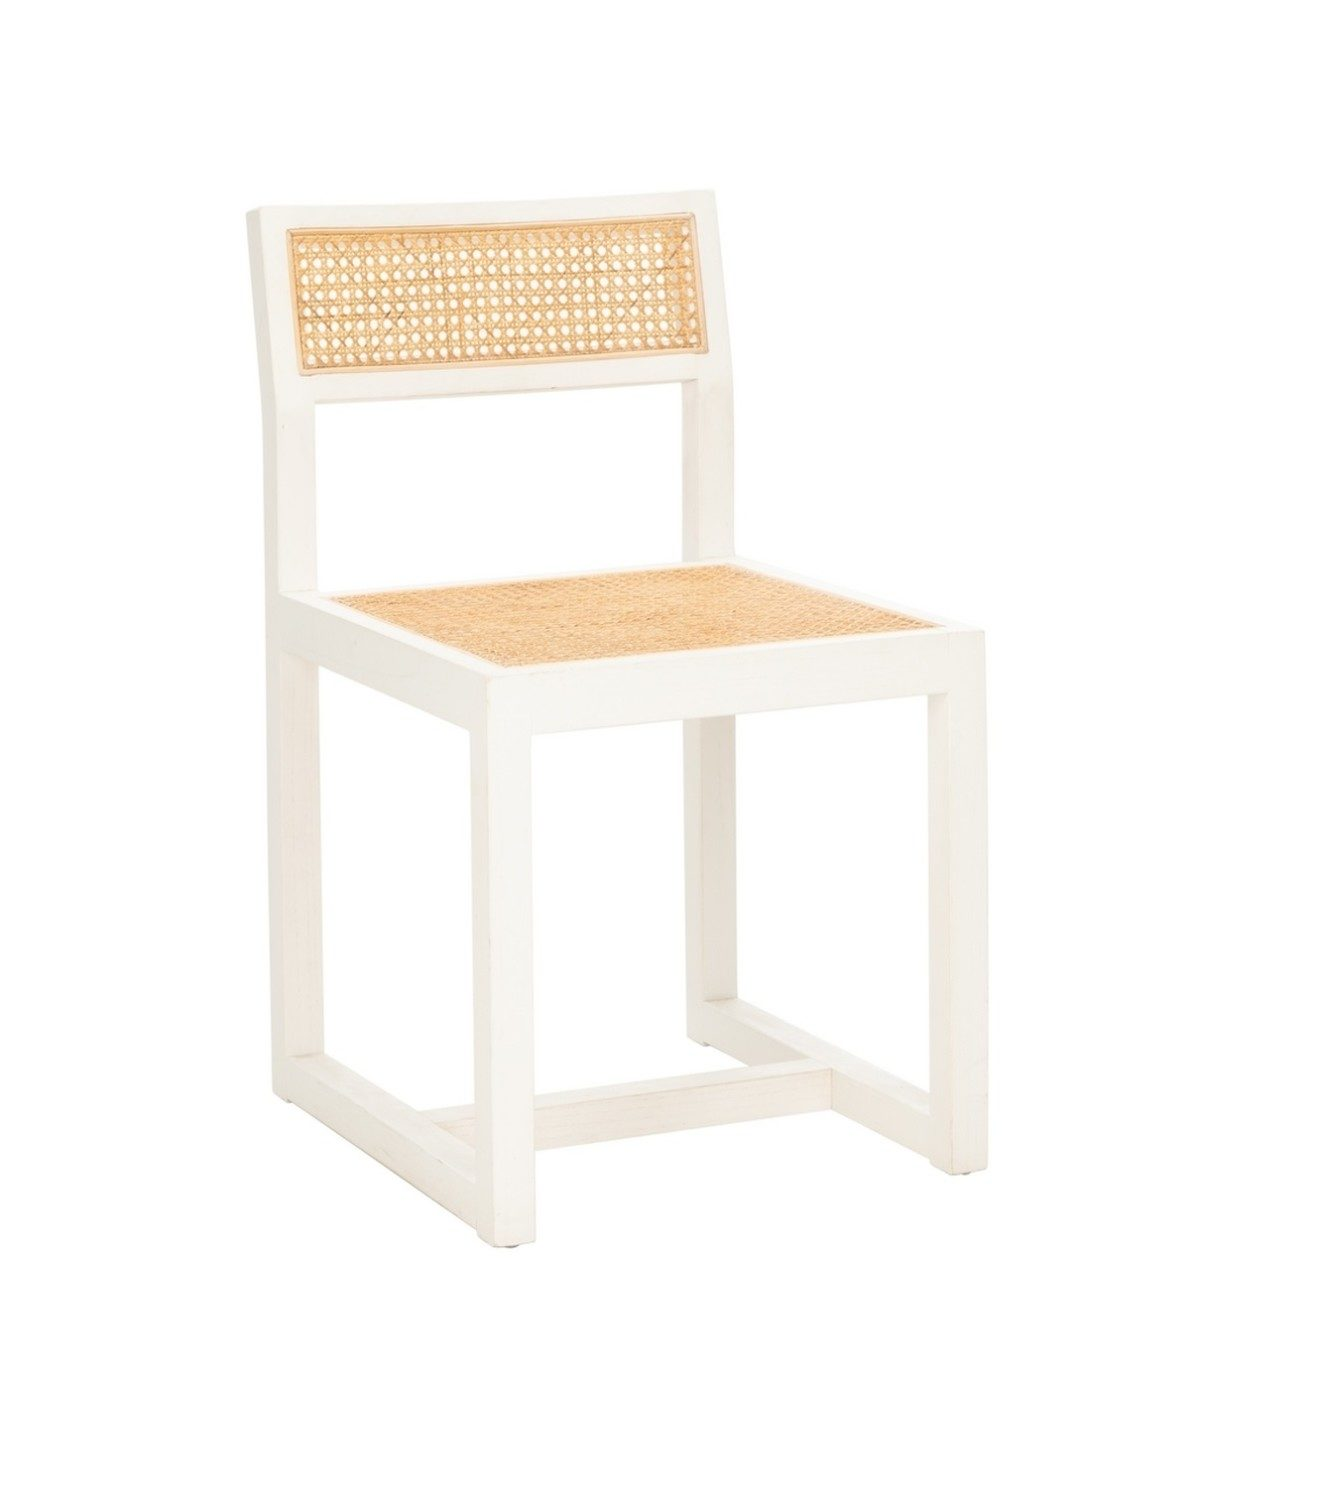 Stupendous White Cane Dining Chair Ncnpc Chair Design For Home Ncnpcorg